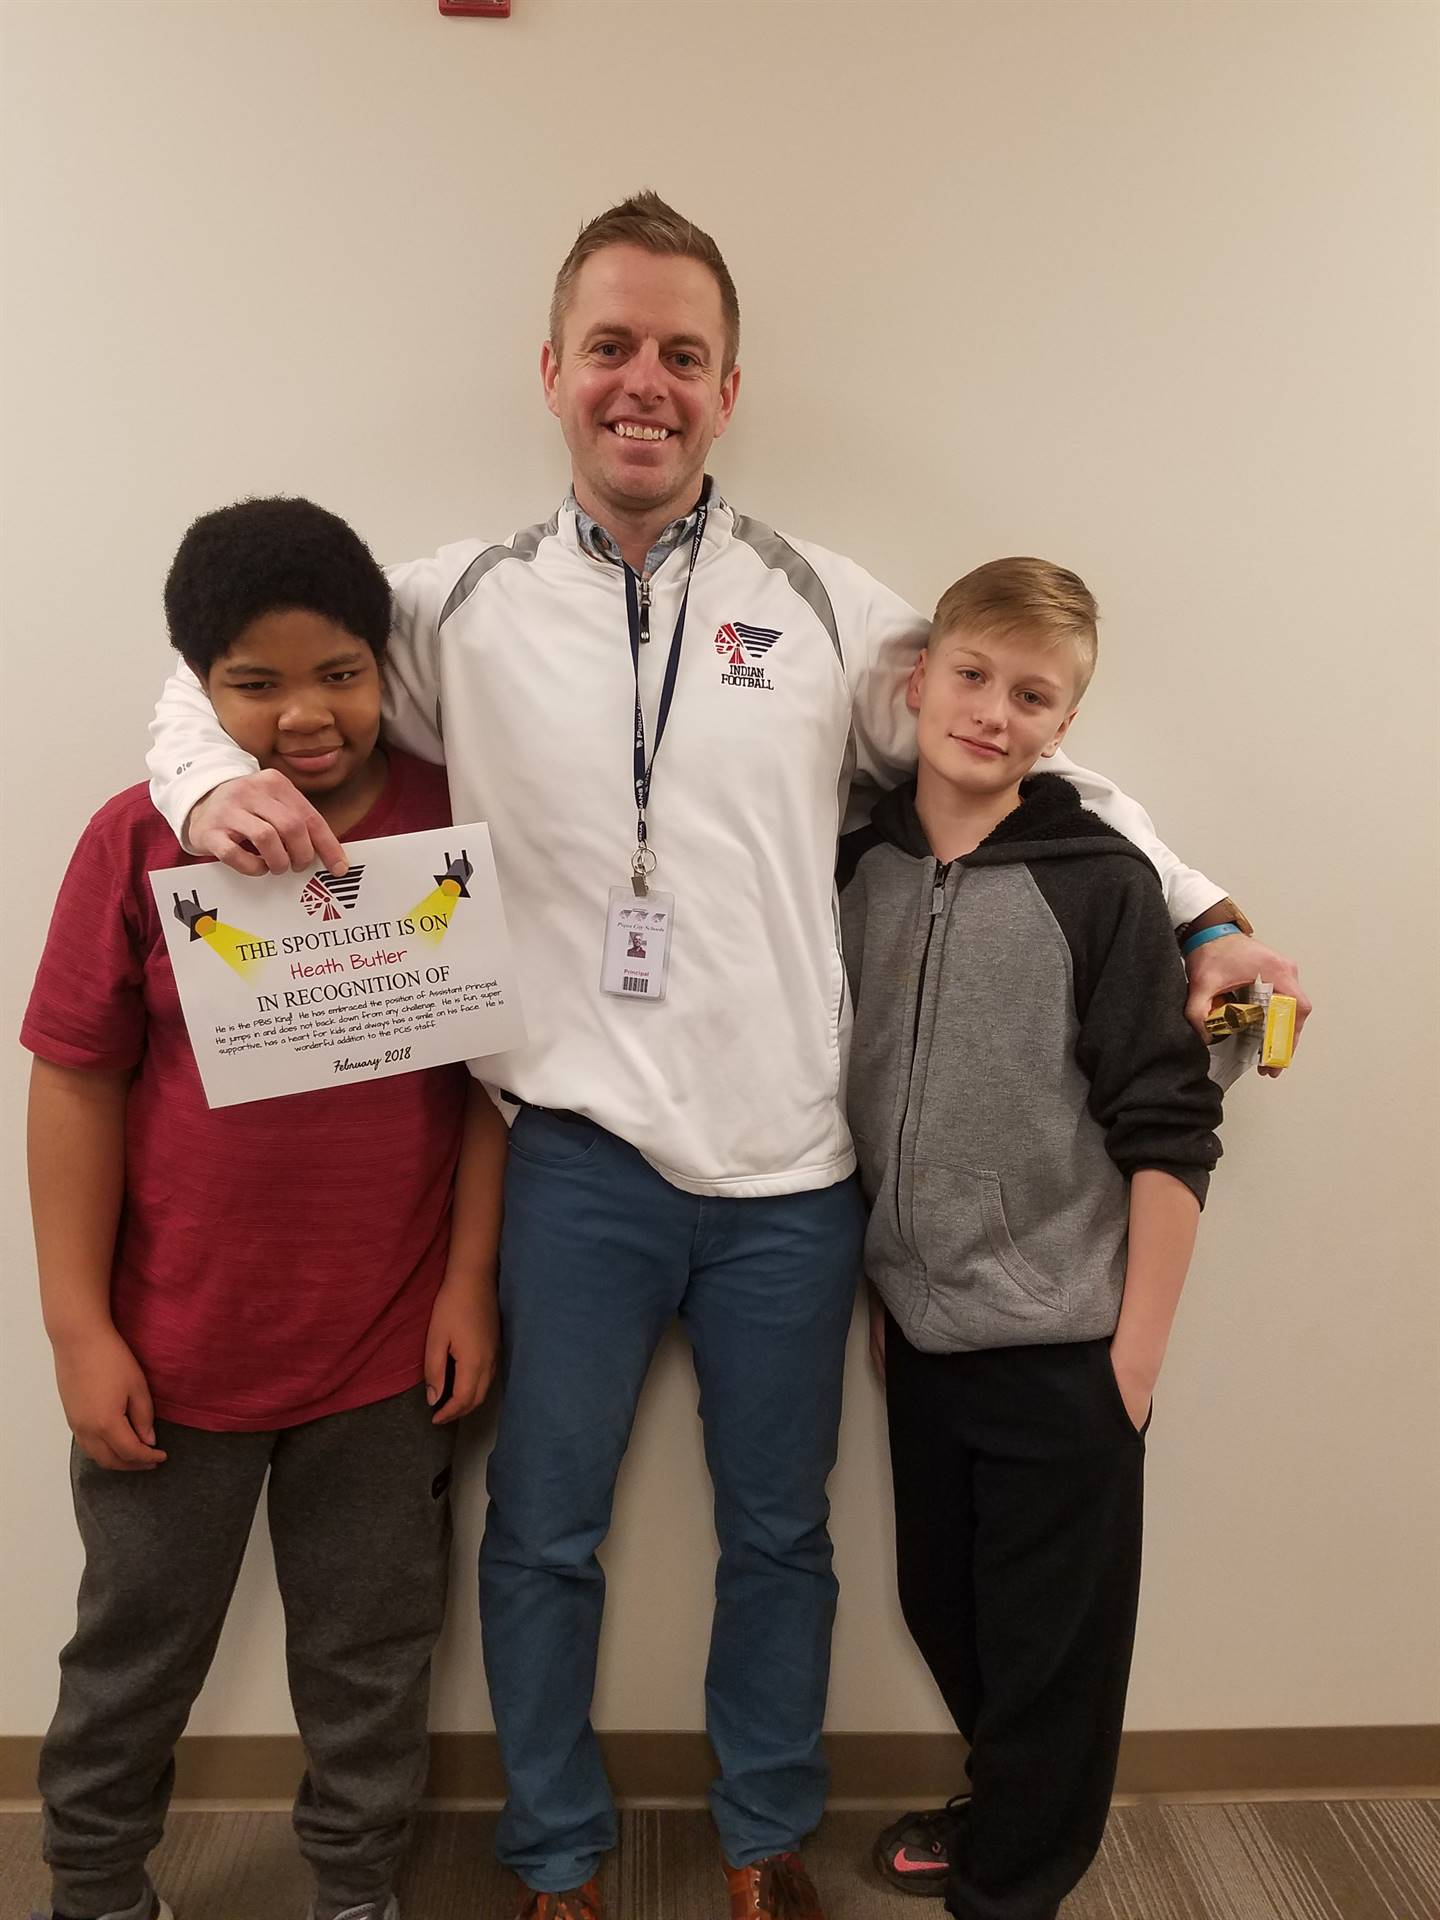 Mr. Butler with students